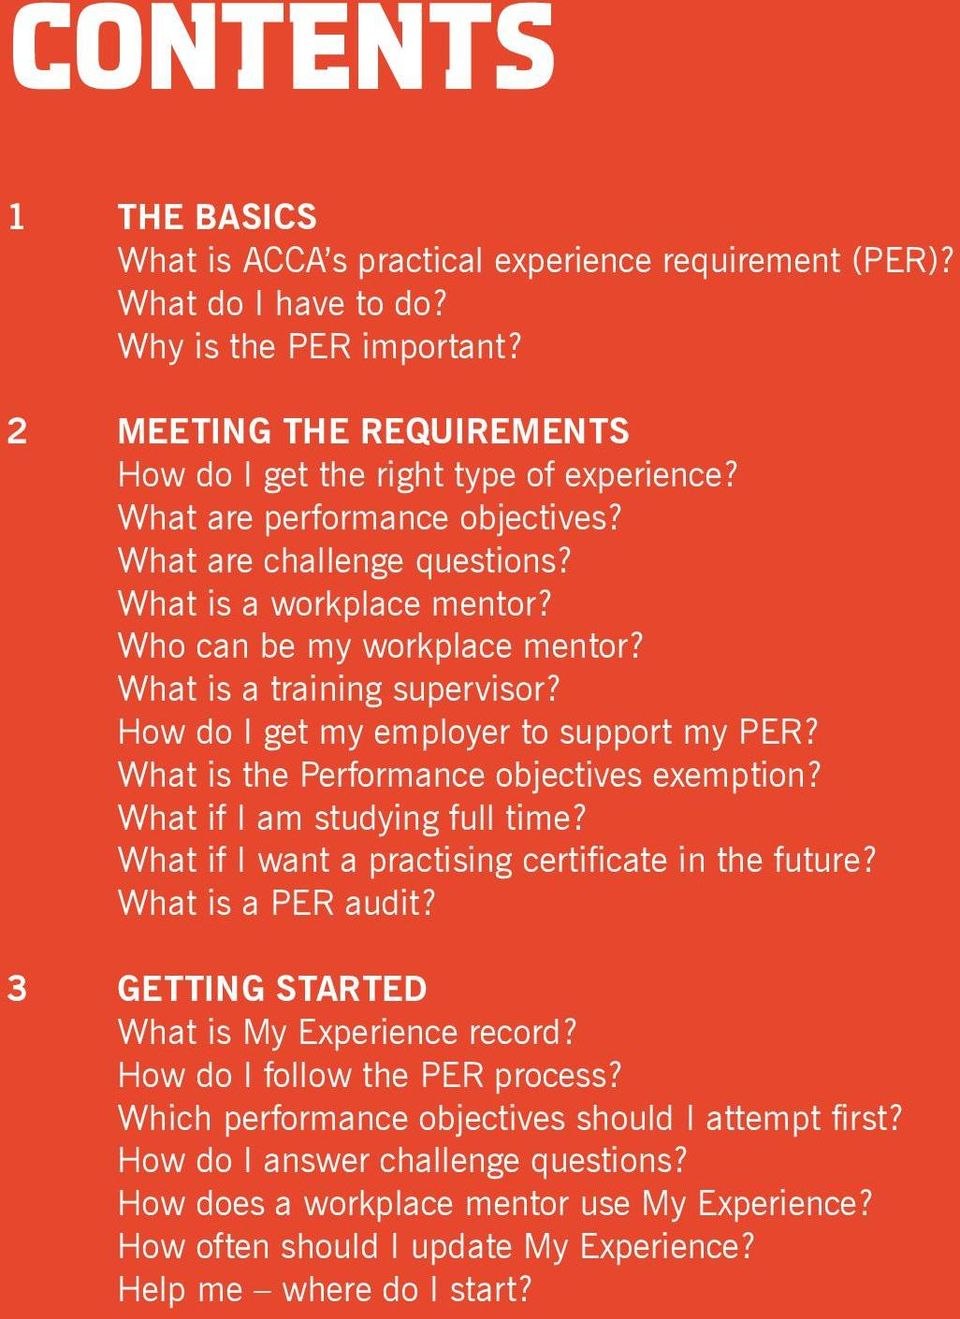 What is the Performance objectives exemption? What if I am studying full time? What if I want a practising certificate in the future? What is a PER audit?